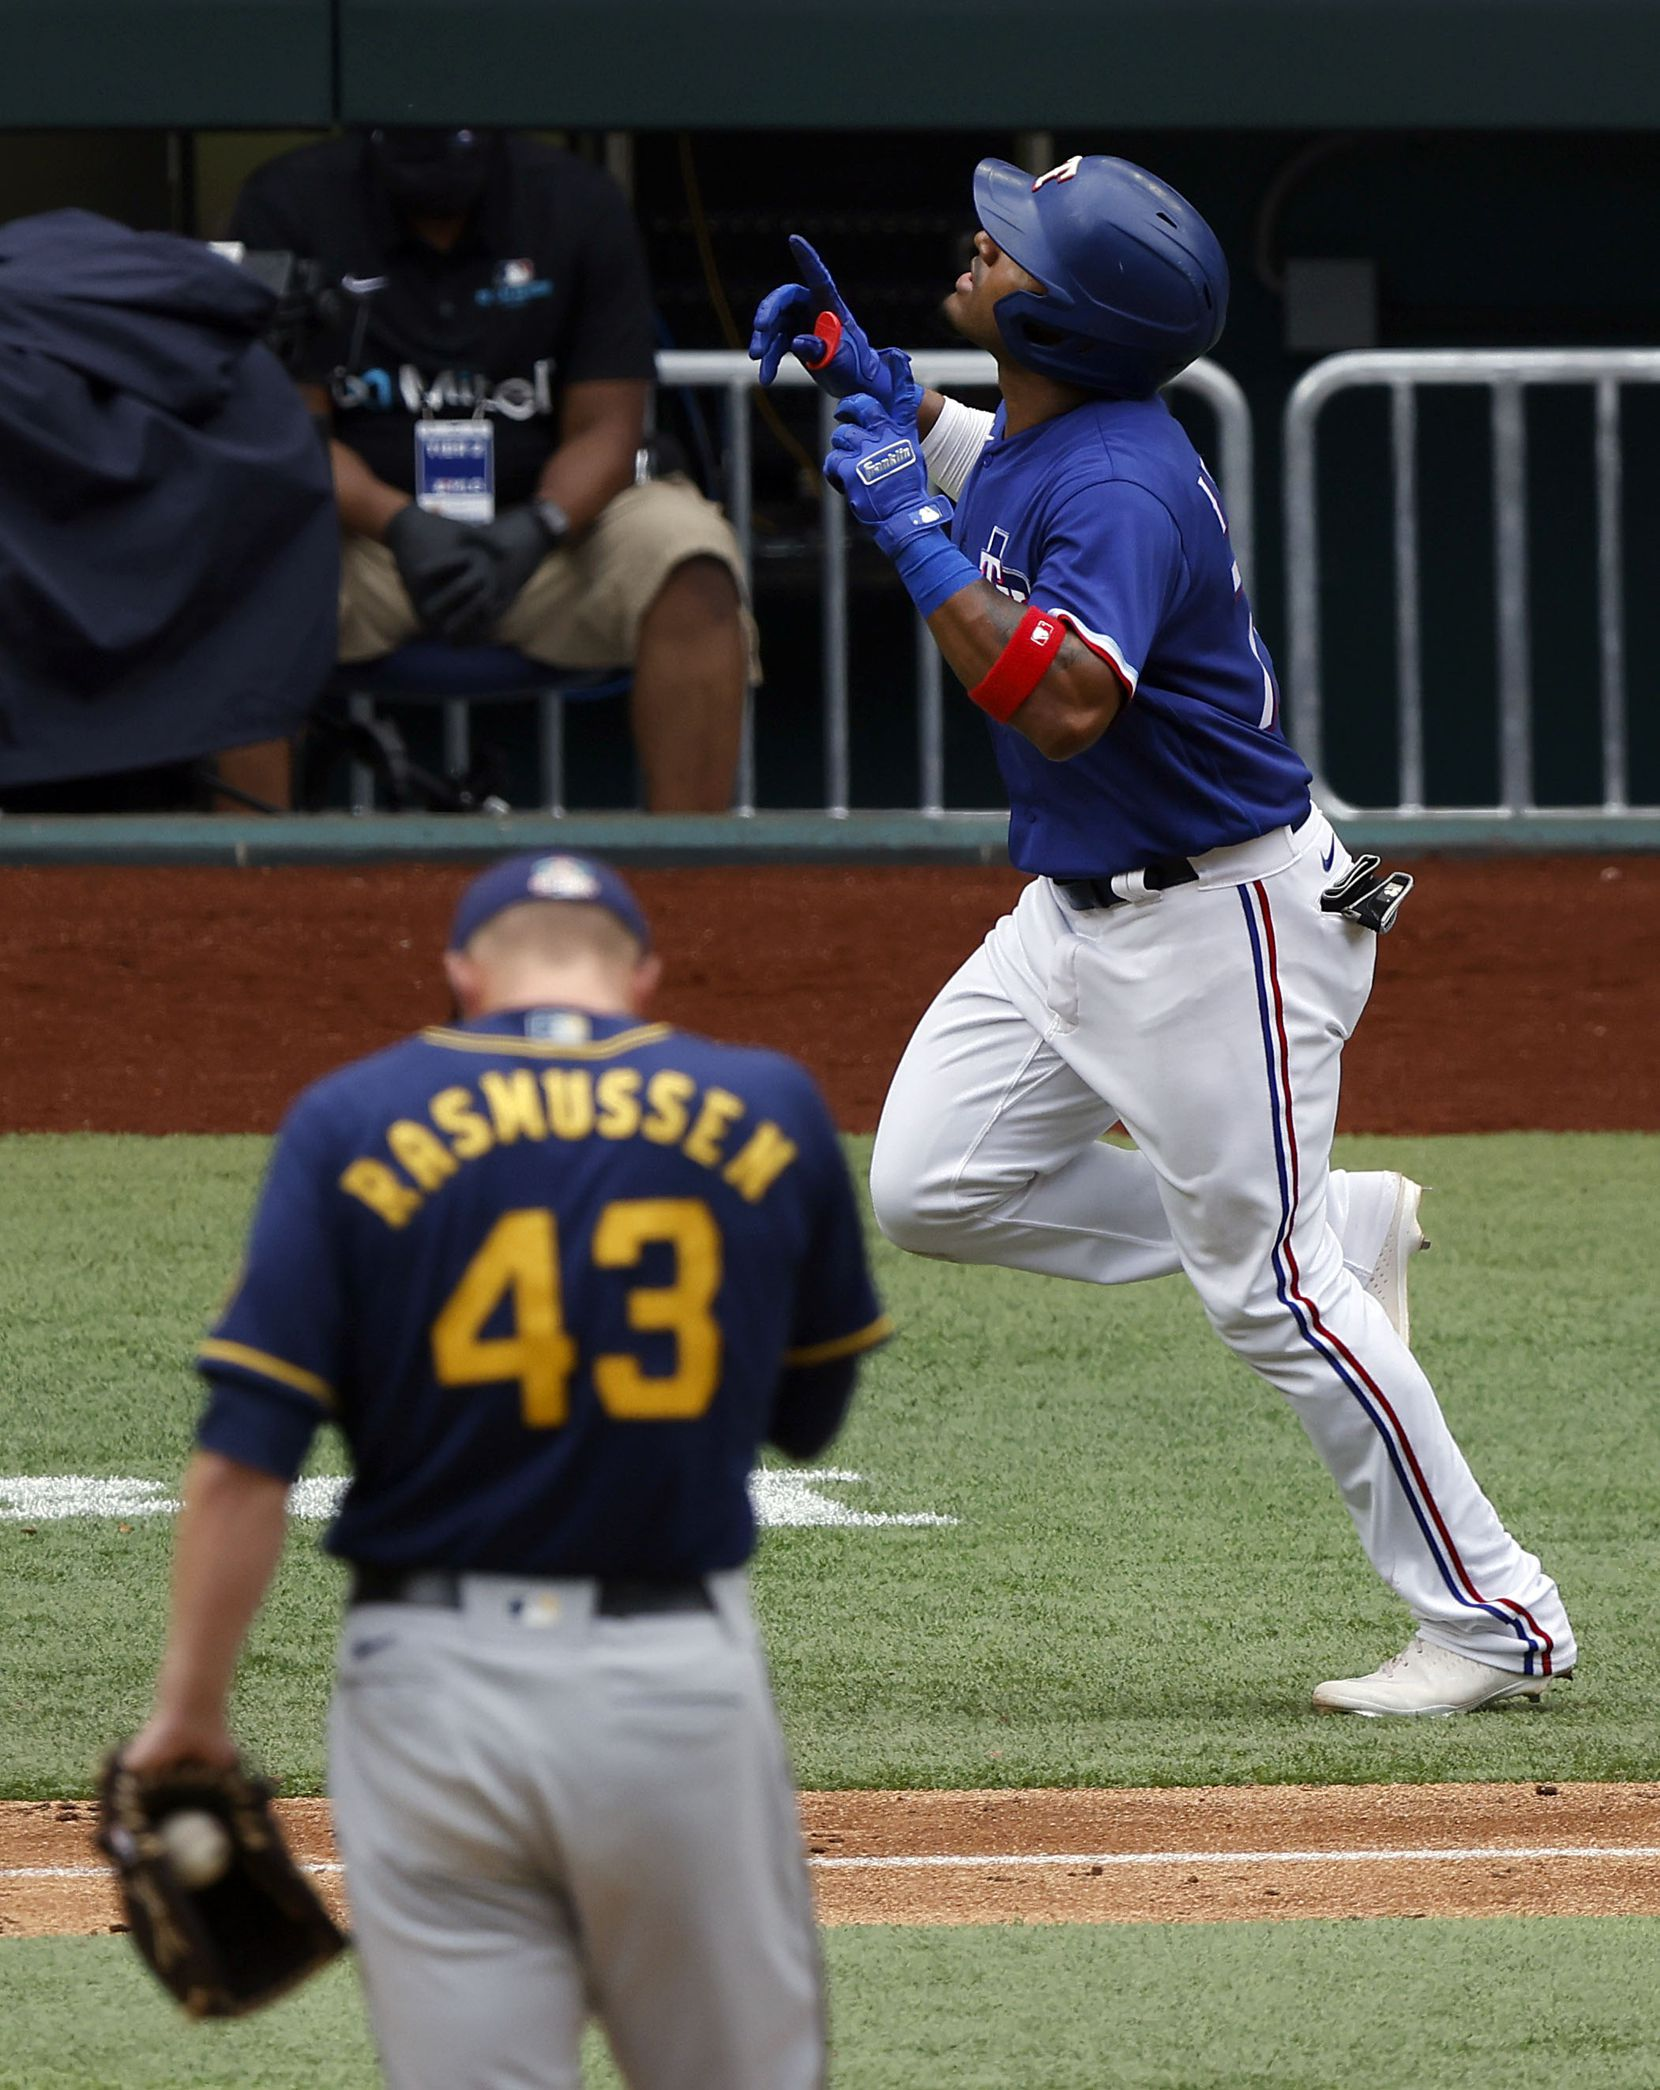 Texas Rangers batter Andy Ibáñez looks skyward after hitting a solo home run in the eighth inning off of Milwaukee Brewers relief pitcher Drew Rasmussen (43) at Globe Life Field in Arlington, Texas. The teams were playing in an exhibition game, Tuesday, March 30, 2021. (Tom Fox/The Dallas Morning News)